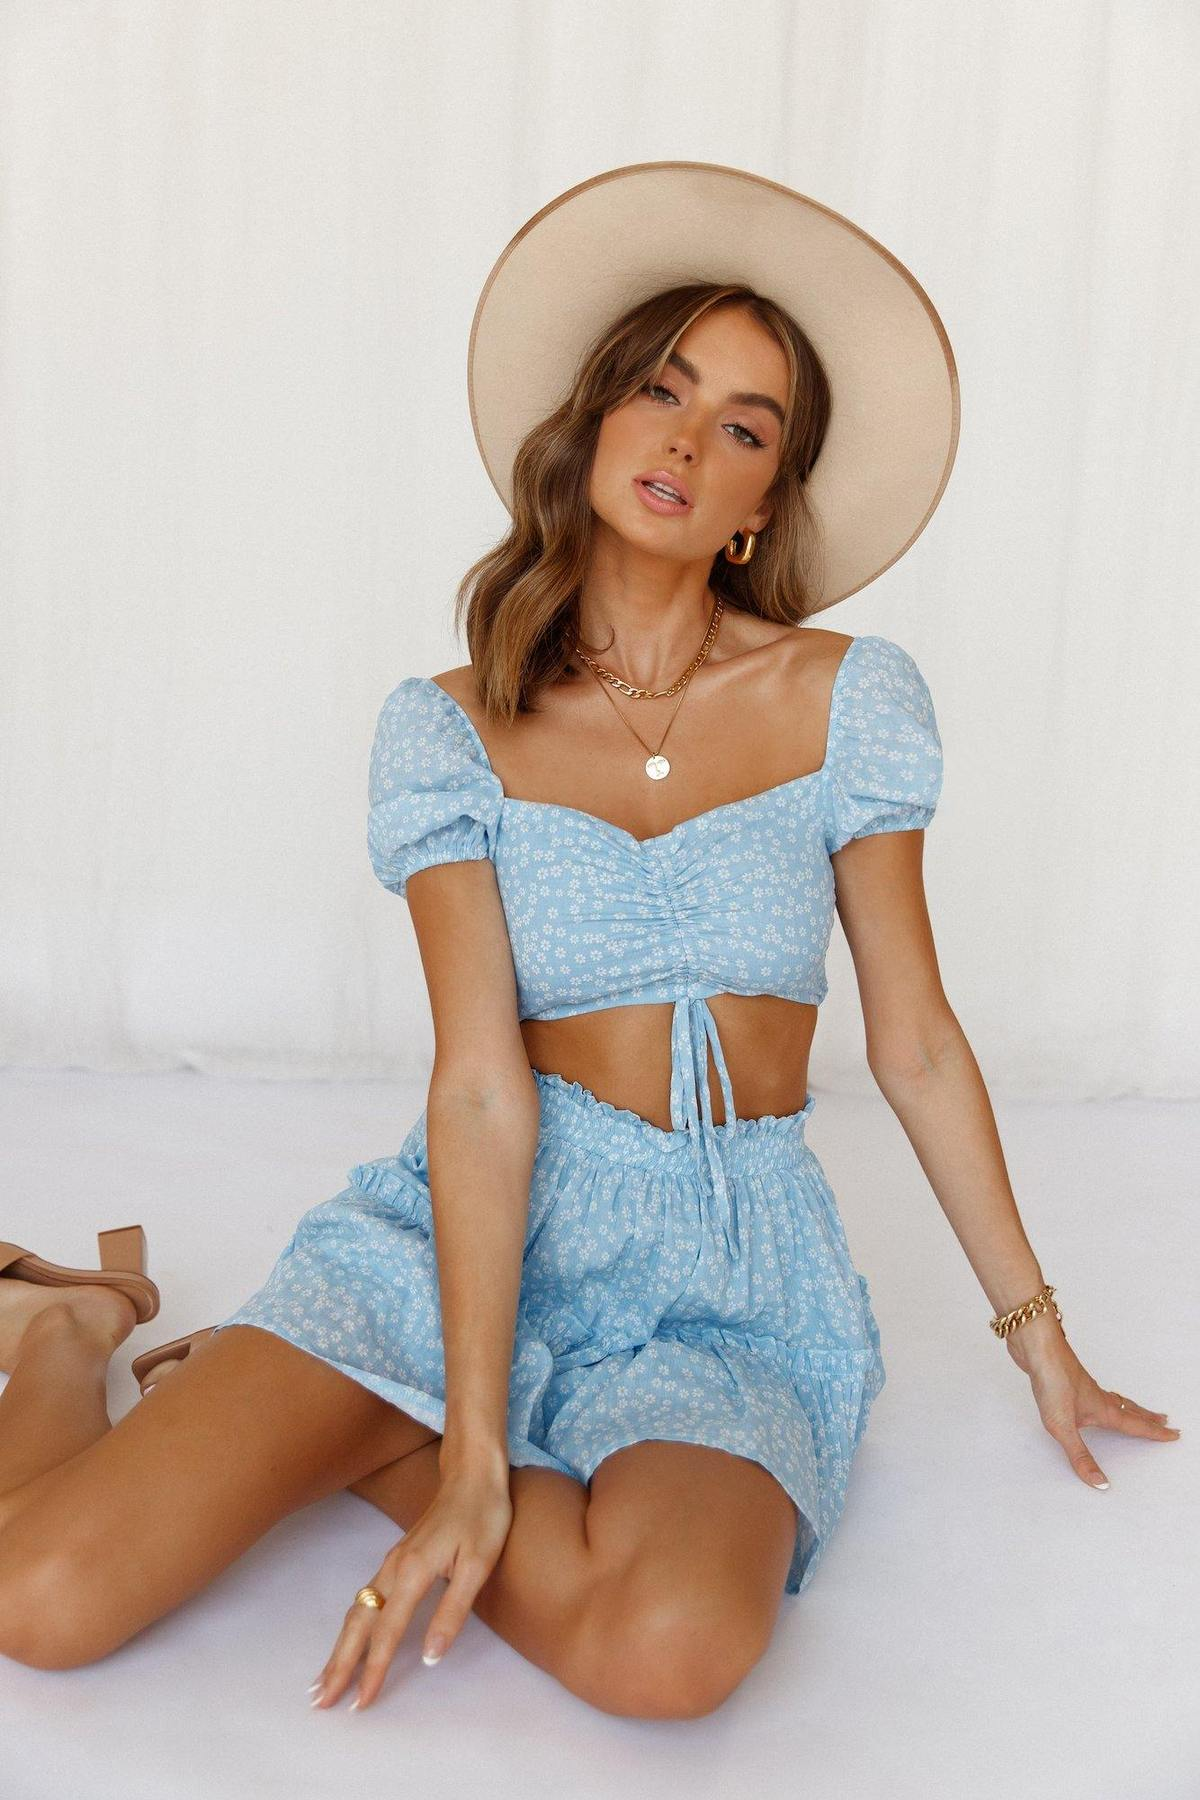 Baby blue floral crop top outfit with skirt